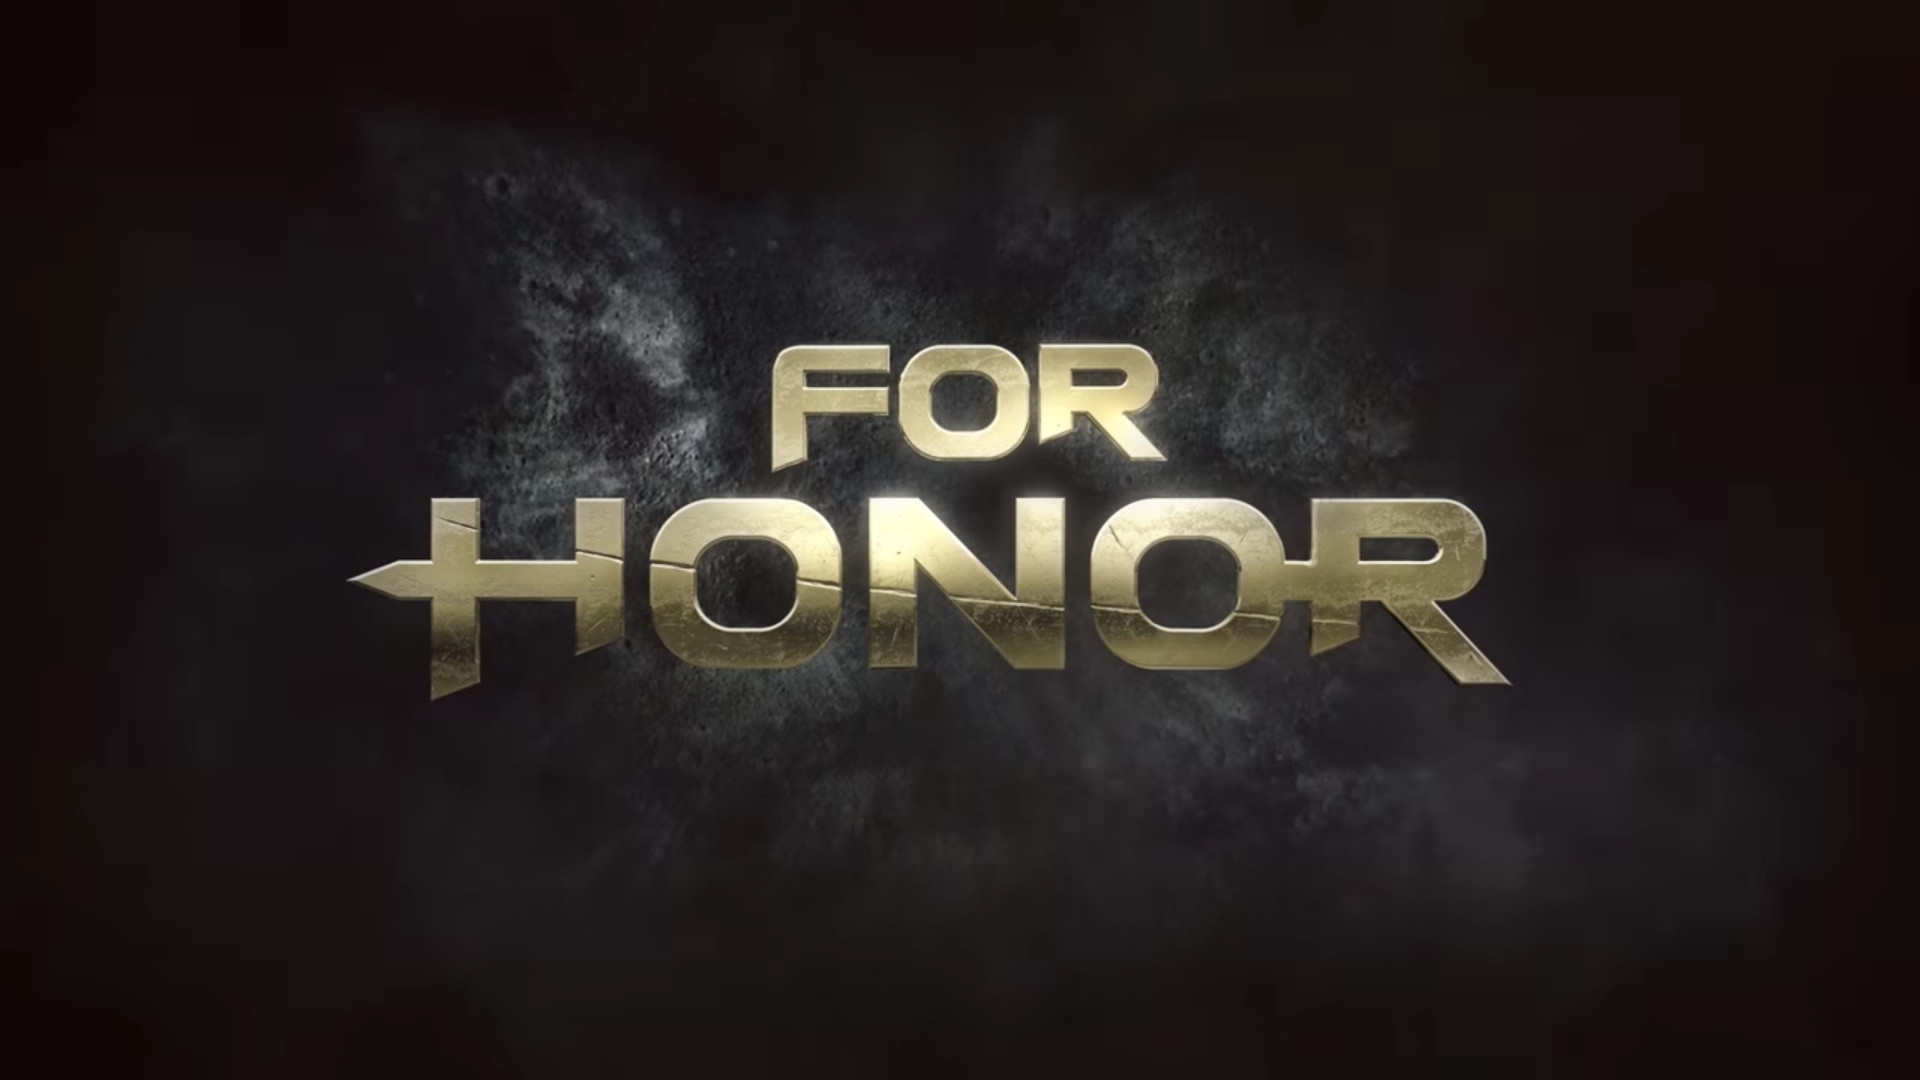 nat games for honor